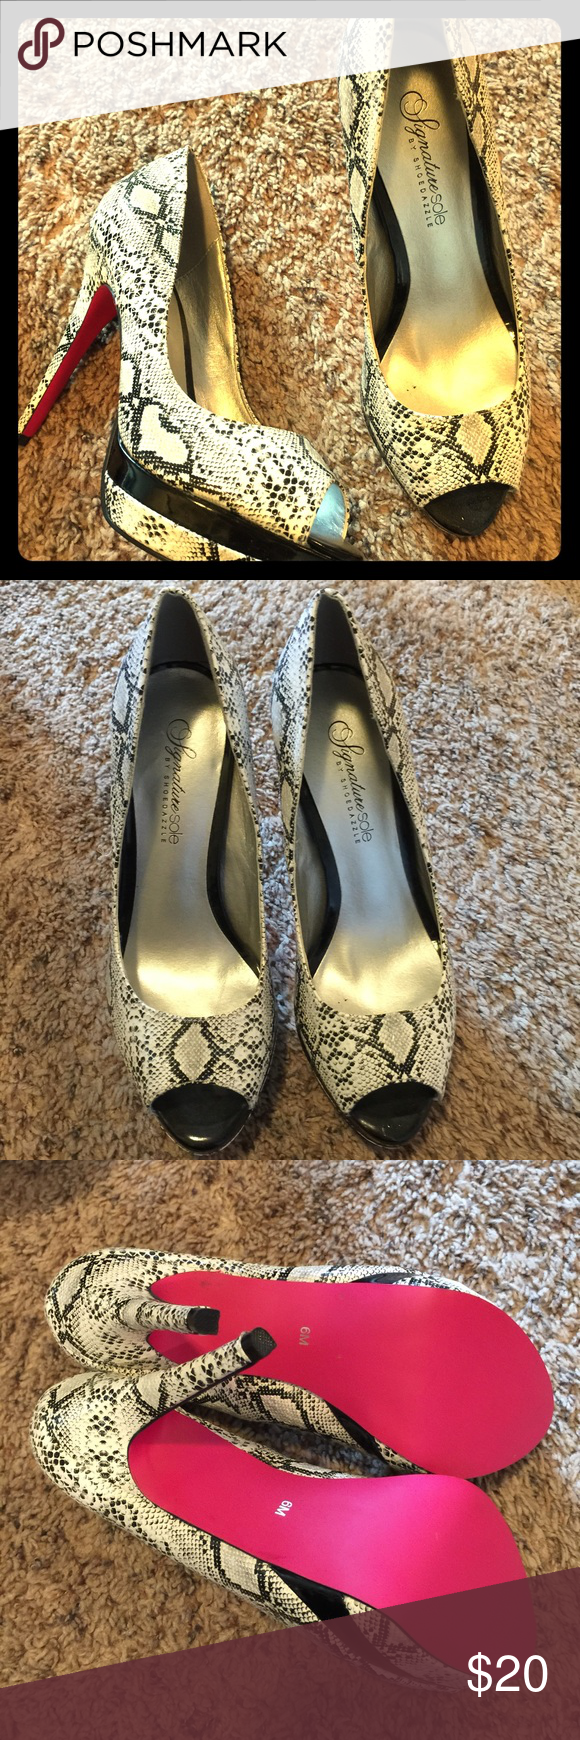 Signature sole heels size 6 by shoedazzle Brand new size 6 heels . Signature sole by shoe dazzle shoedazzle Shoes Heels